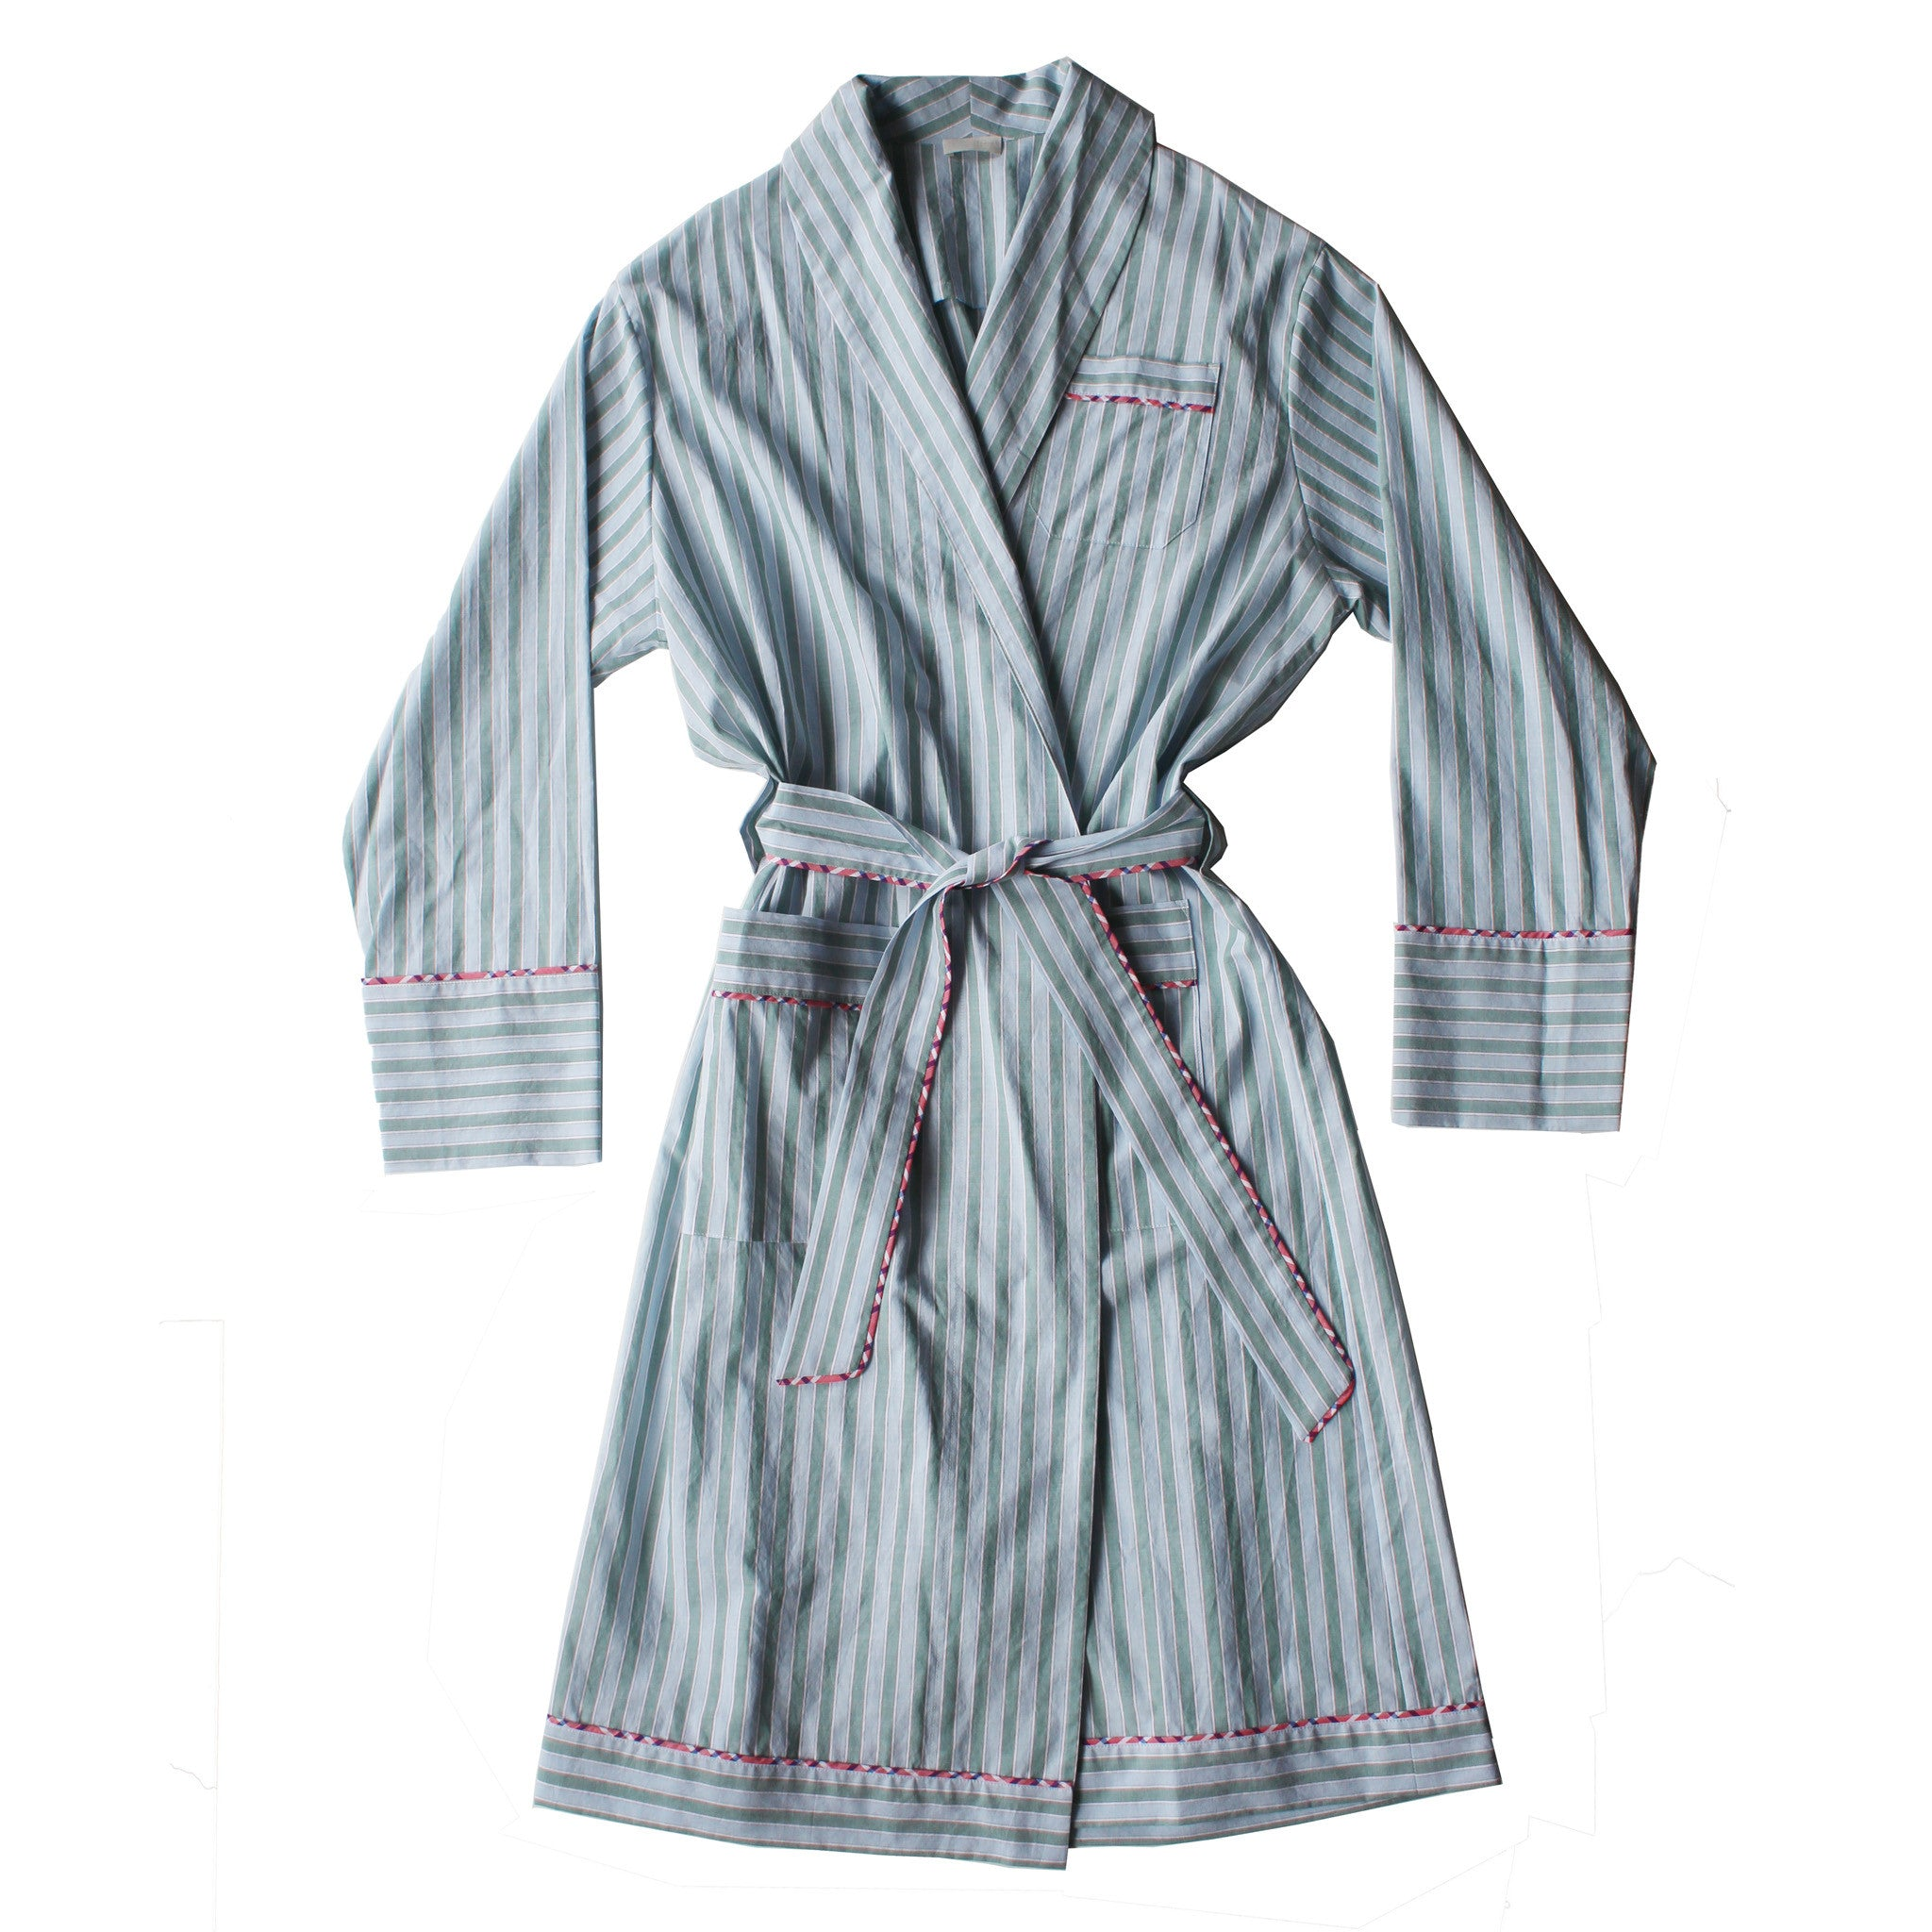 Janus Robe in Green Stripe Italian Cotton